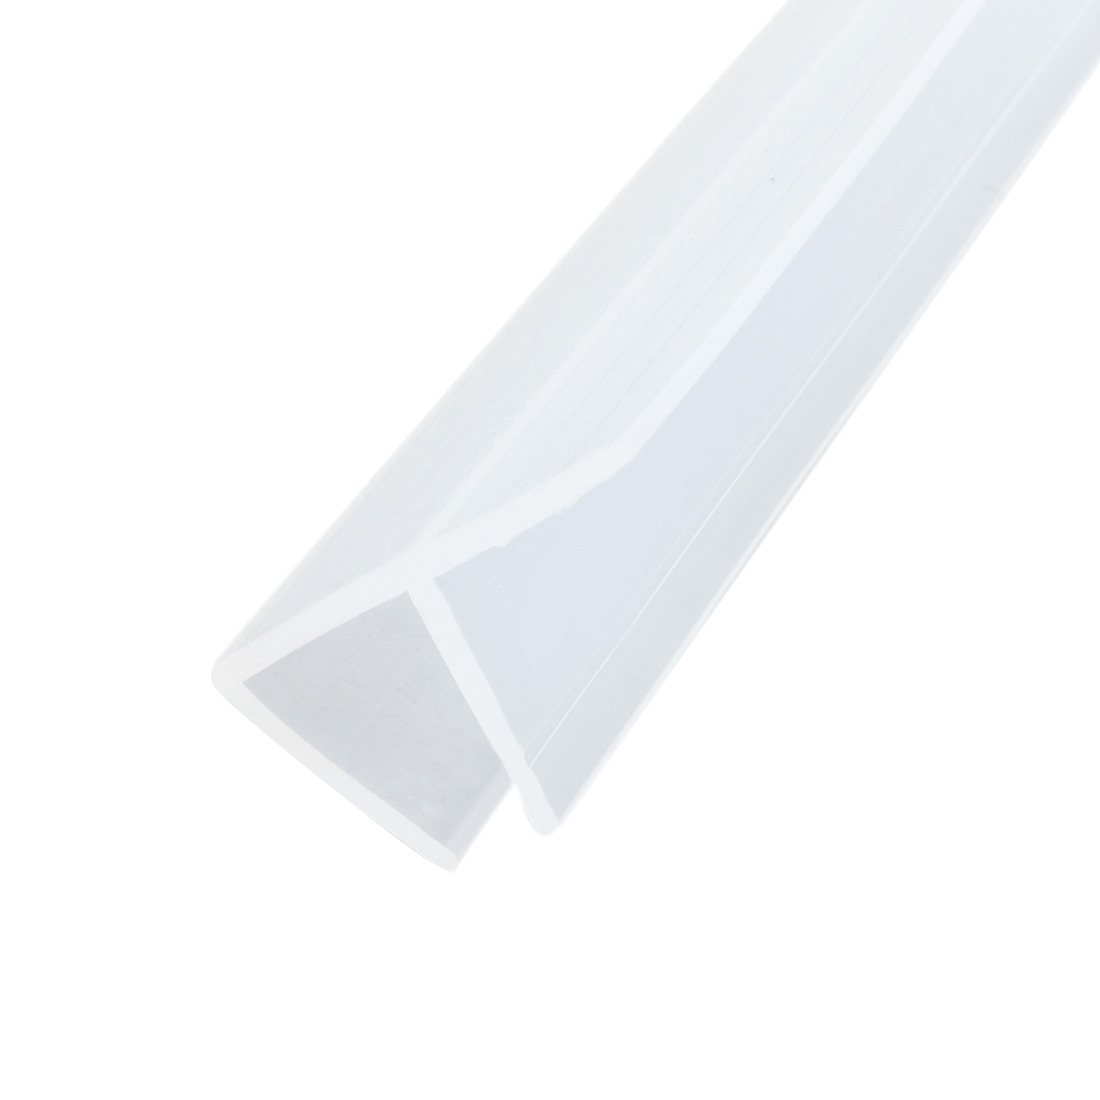 39-inch F Shaped Frameless Window Shower Door Seal Clear for 10mm (approx 3/8-inch) Glass